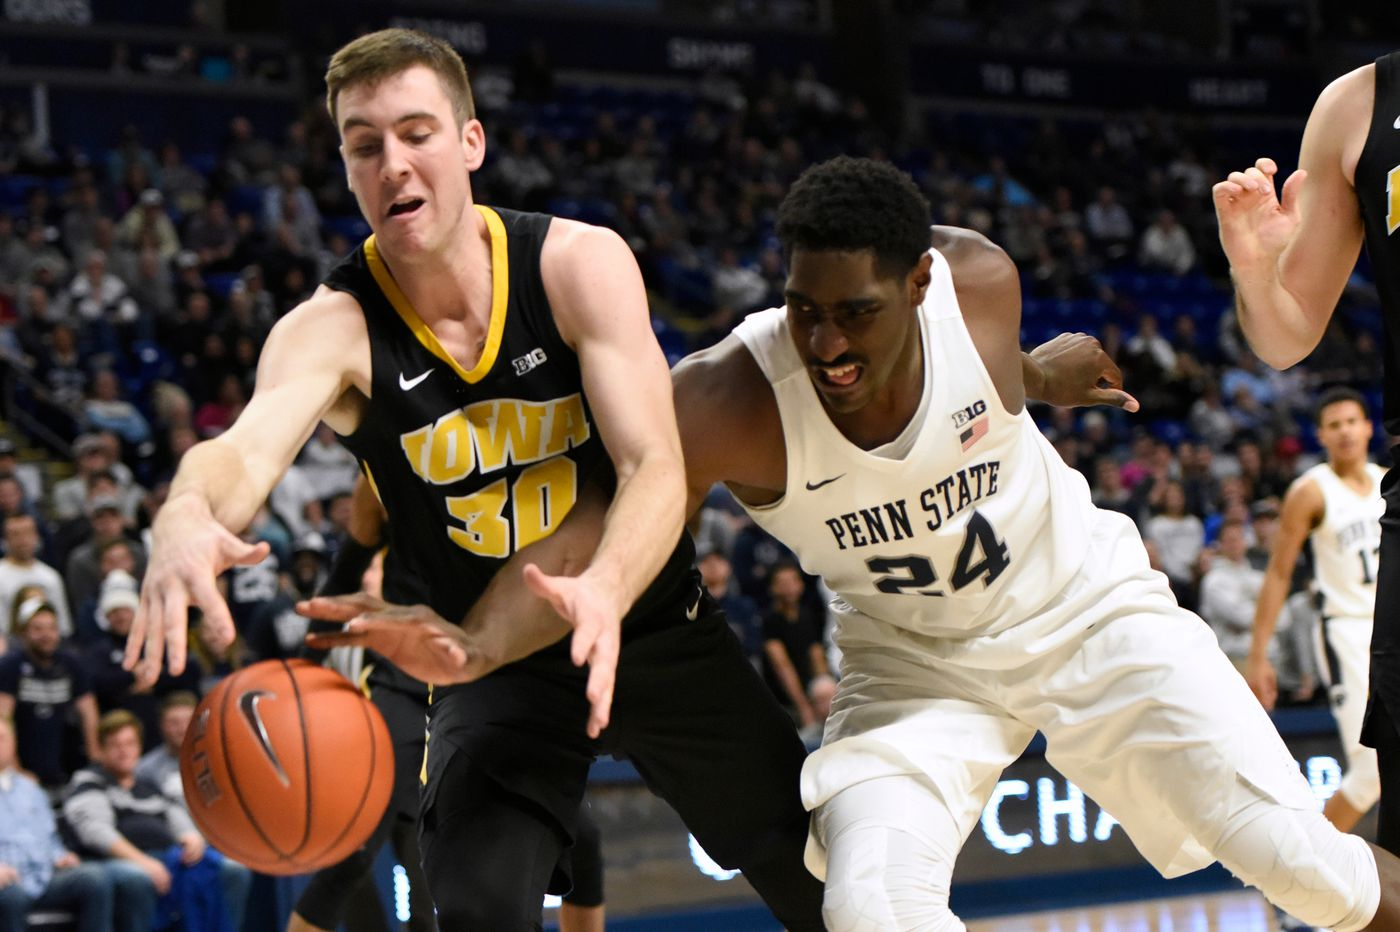 Penn State basketball to host Iowa at Palestra in January